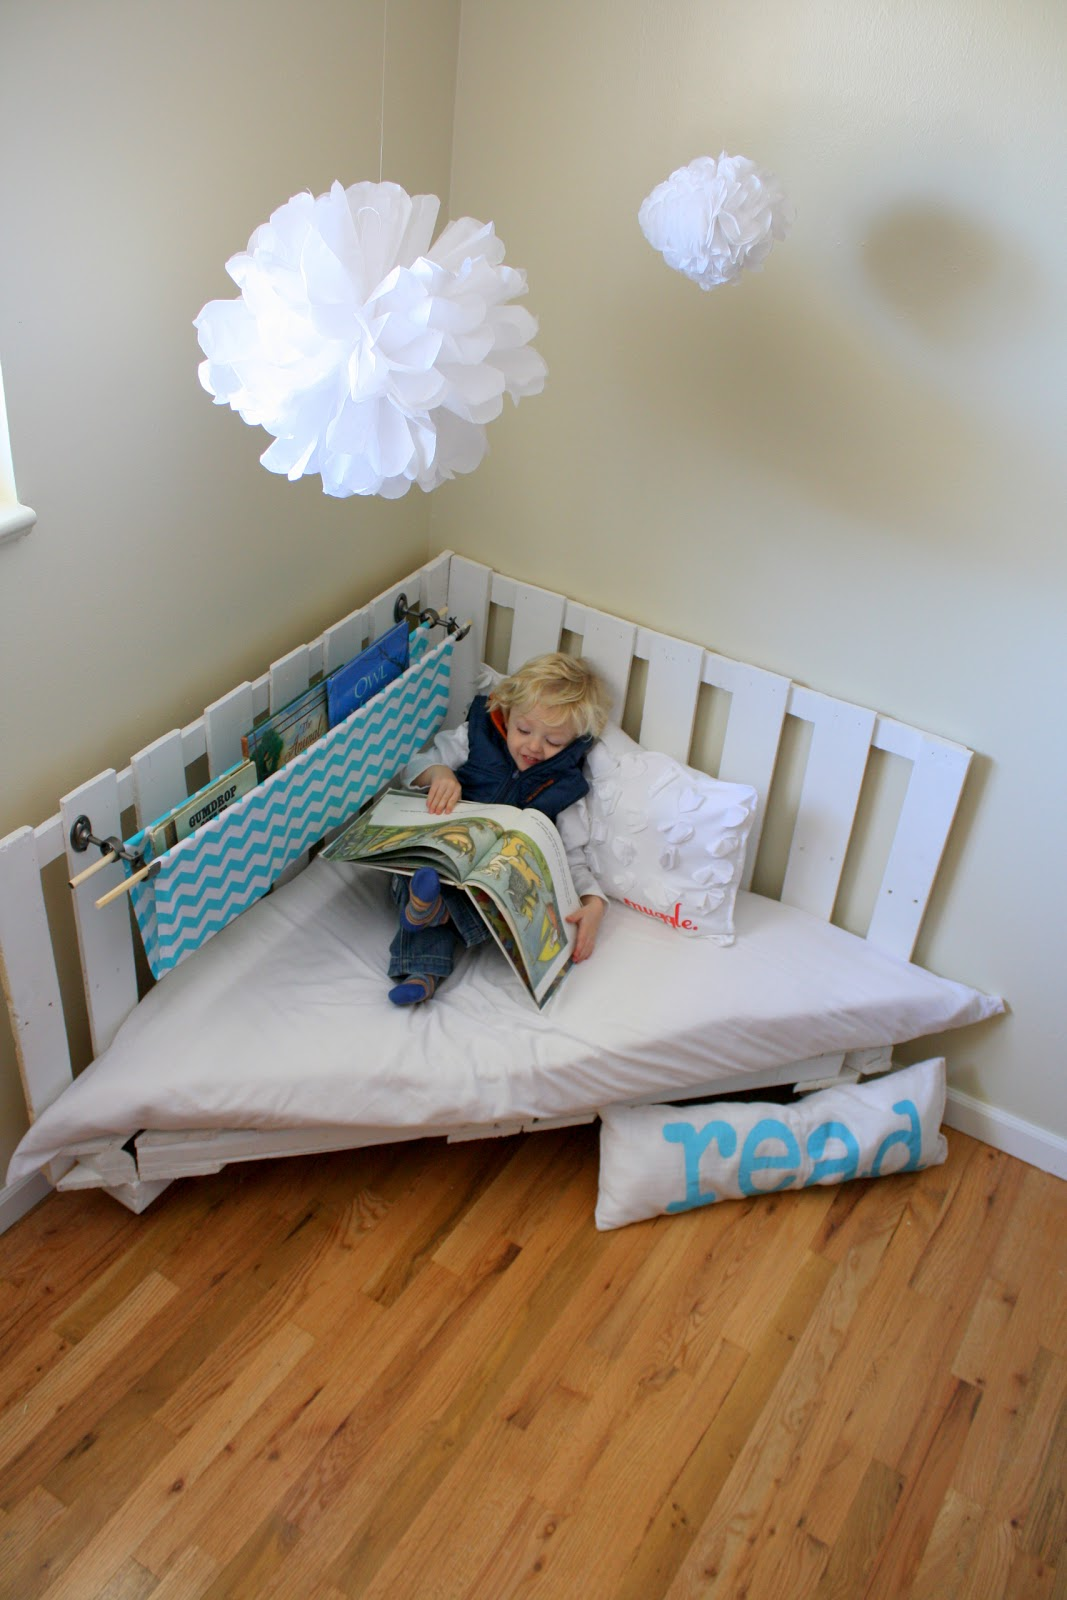 Reading Corner Furniture how to make a reading nook using two wooden palettes (part 1)